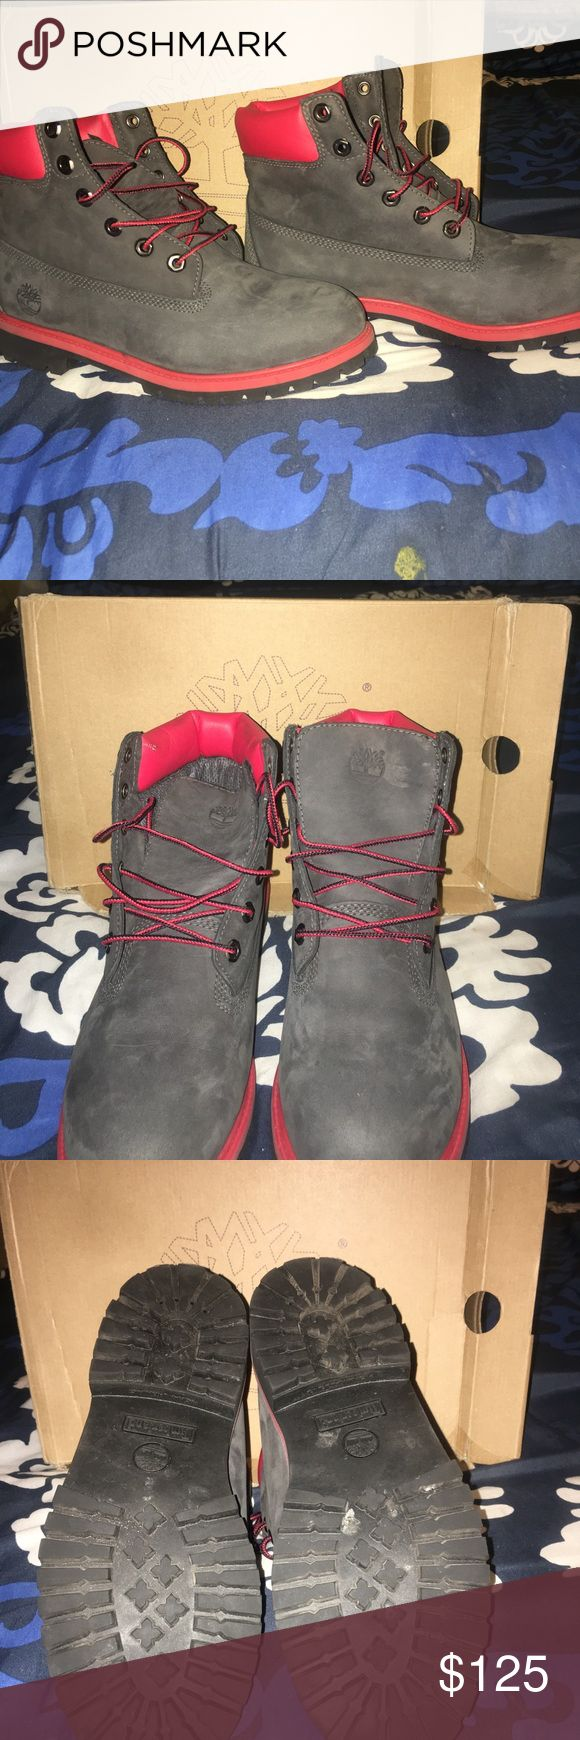 "BOOTS Size 7 youth Timberlands boots 6"" ONLY WORE ONCE DARK GRAY AND RED Timberland Shoes Combat & Moto Boots"